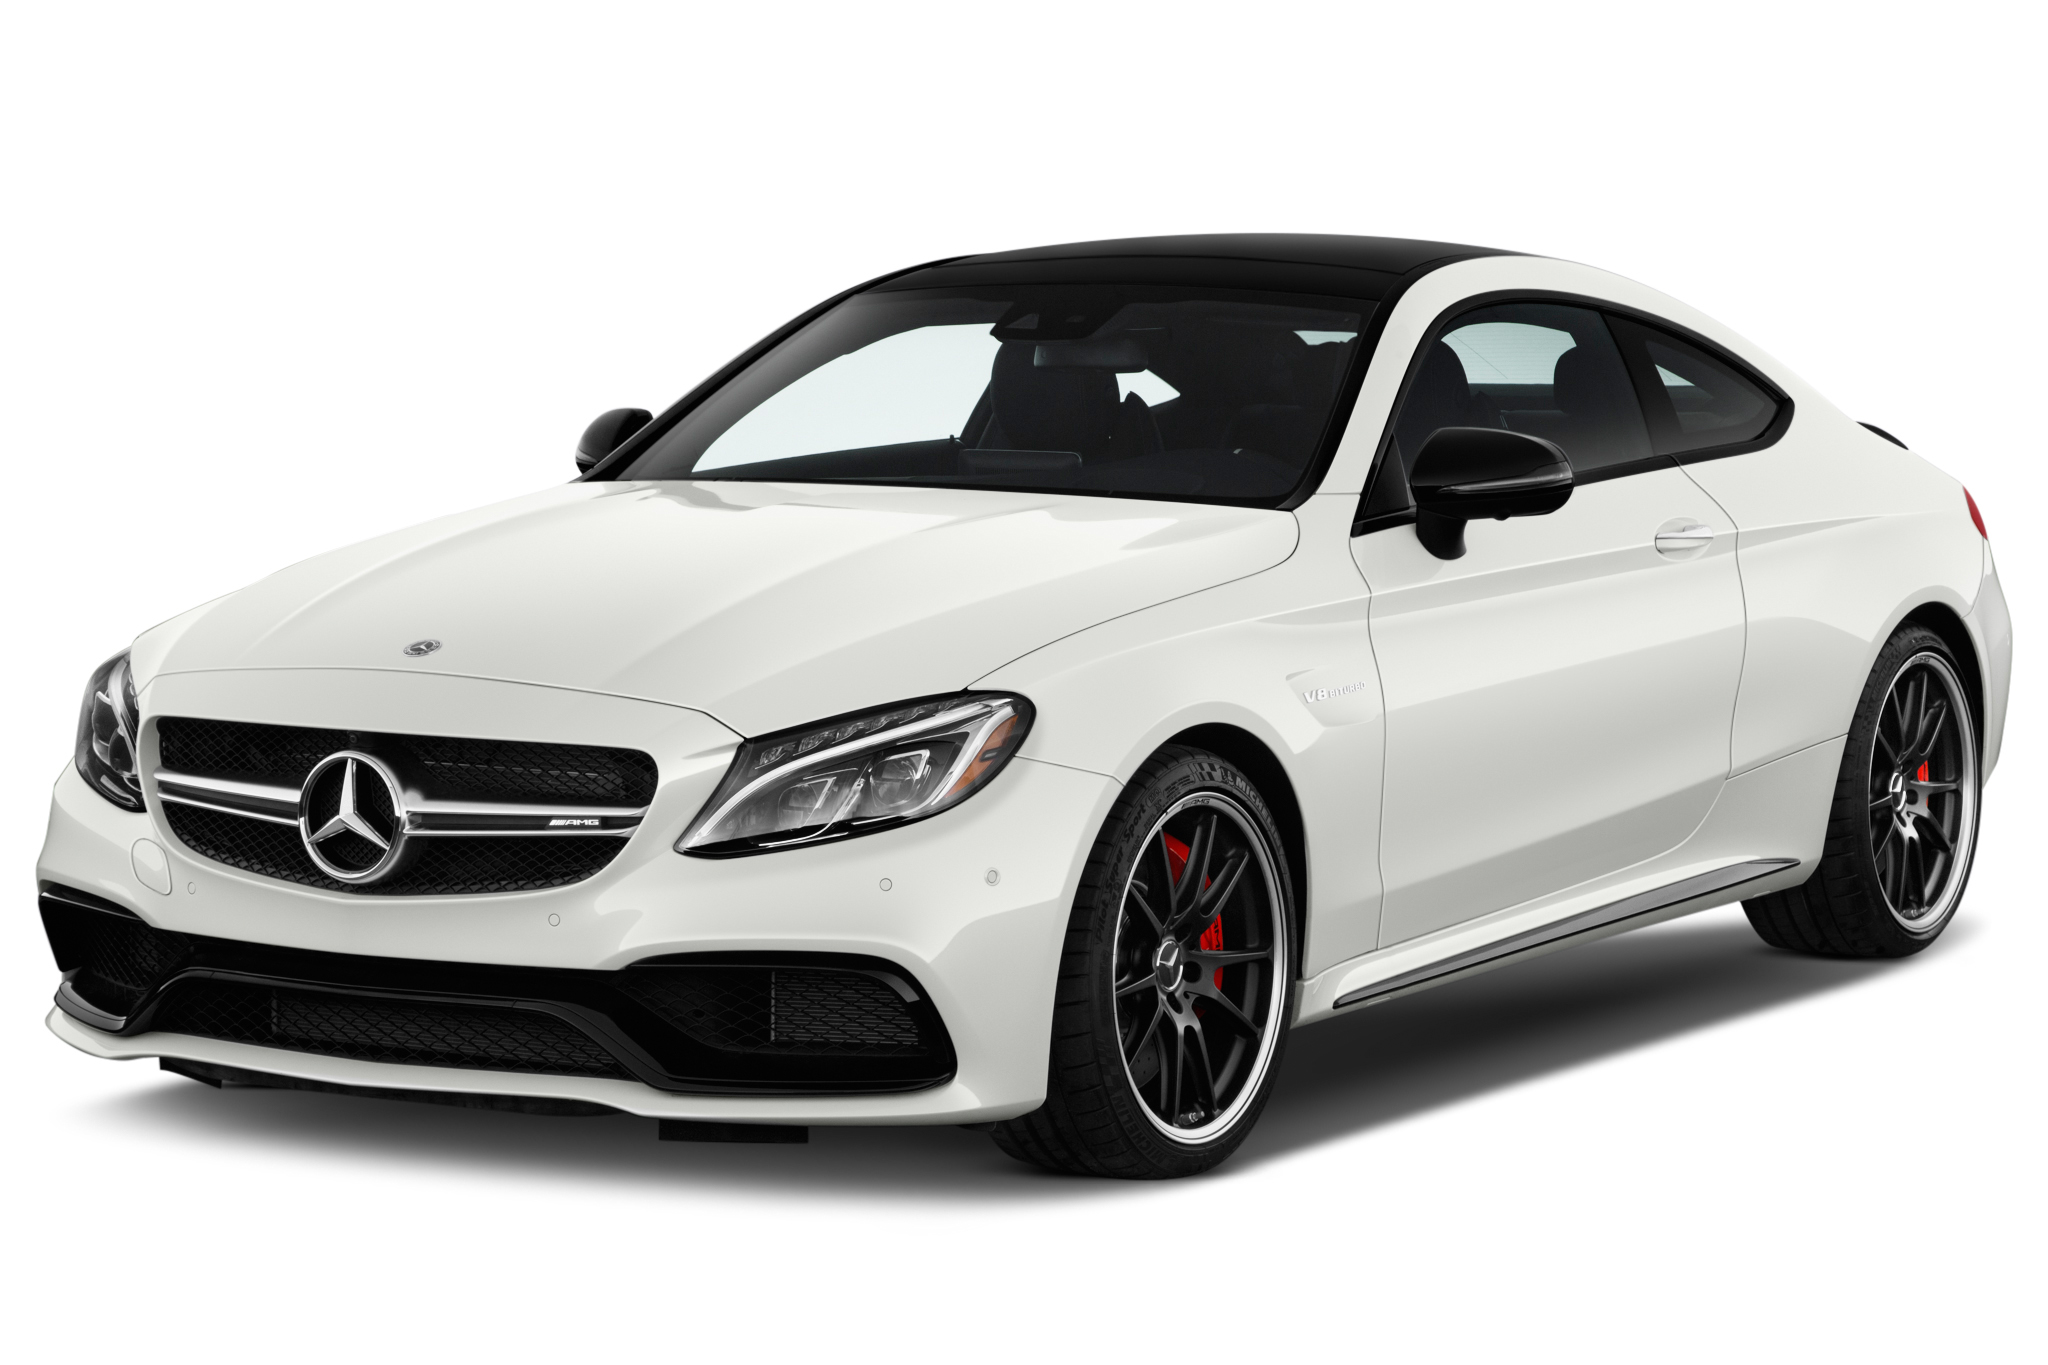 2018 mercedes amg c63s epitomizing power style. Black Bedroom Furniture Sets. Home Design Ideas